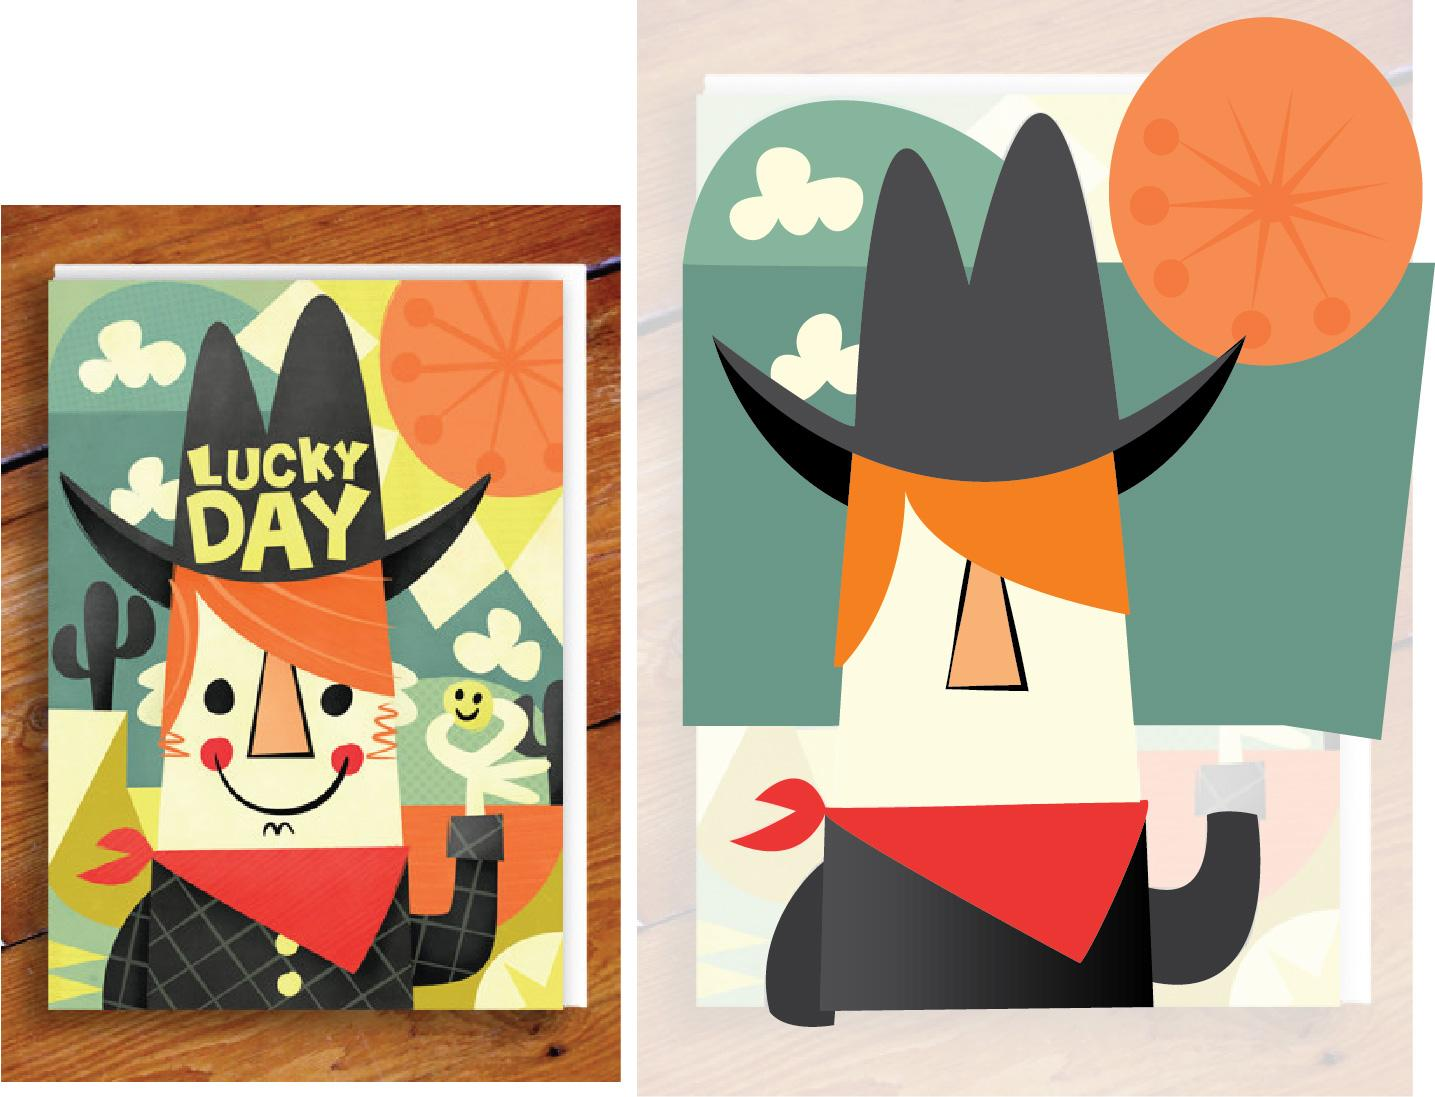 Pintachan: Lucky Day - image 2 - student project